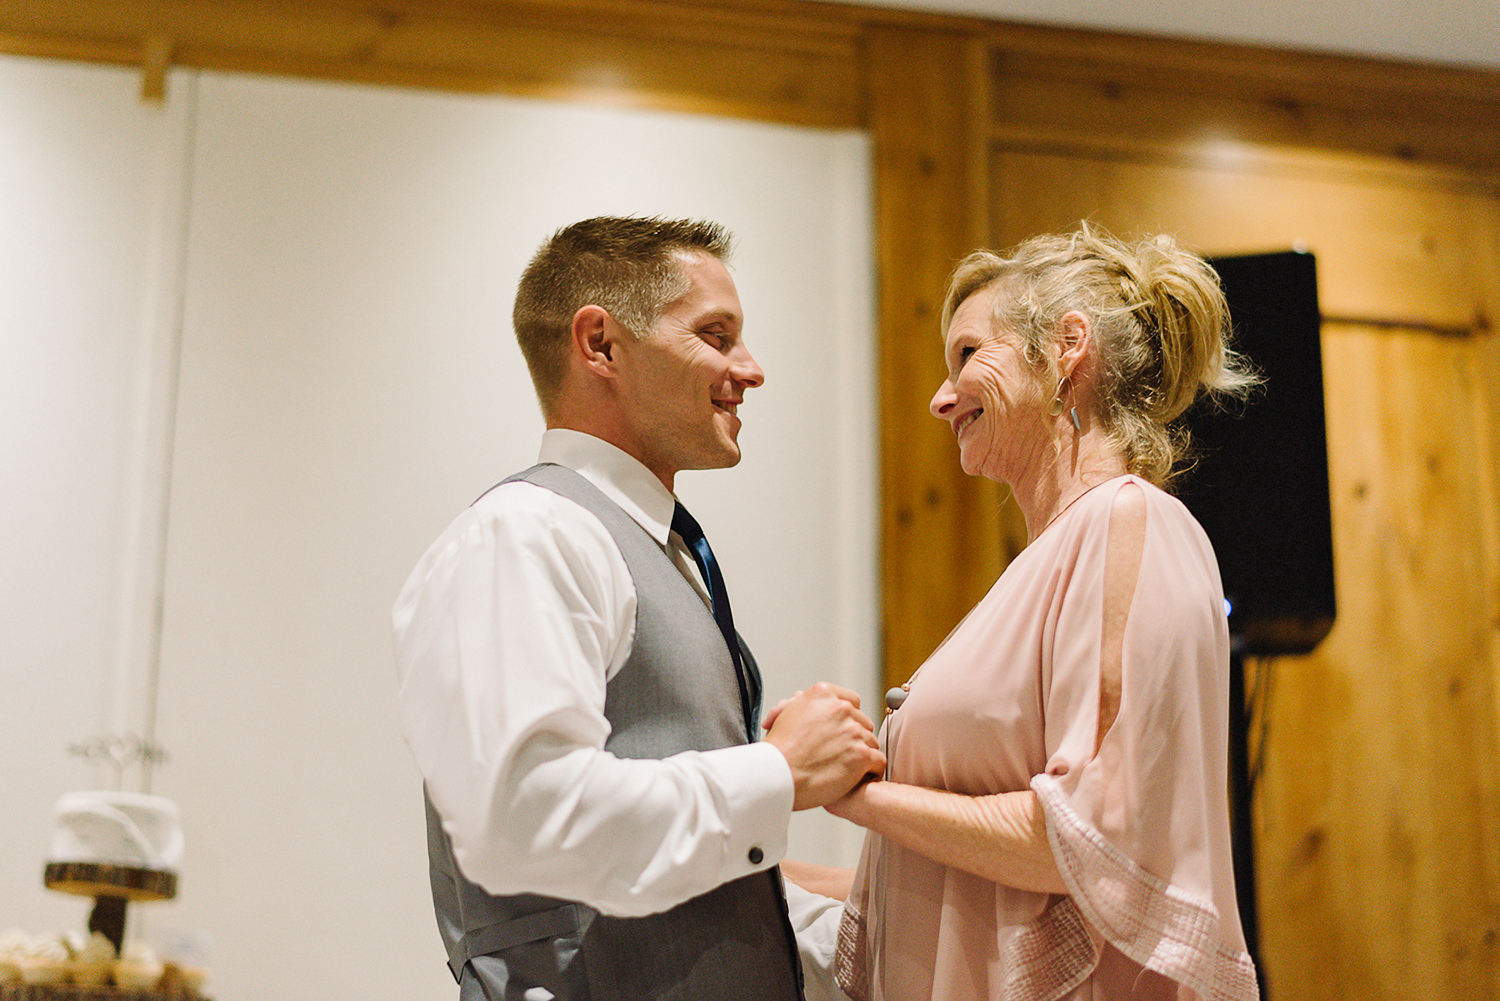 hidden-valley-resort-torontos-best-wedding-photographers-ryanne-hollies-photography-calgary-muskoka-haliburton-port-carling-cottage-wedding-at-resort-party-candid-documentary-photography-mother-son-dance-with-groom-cute-moments.jpg